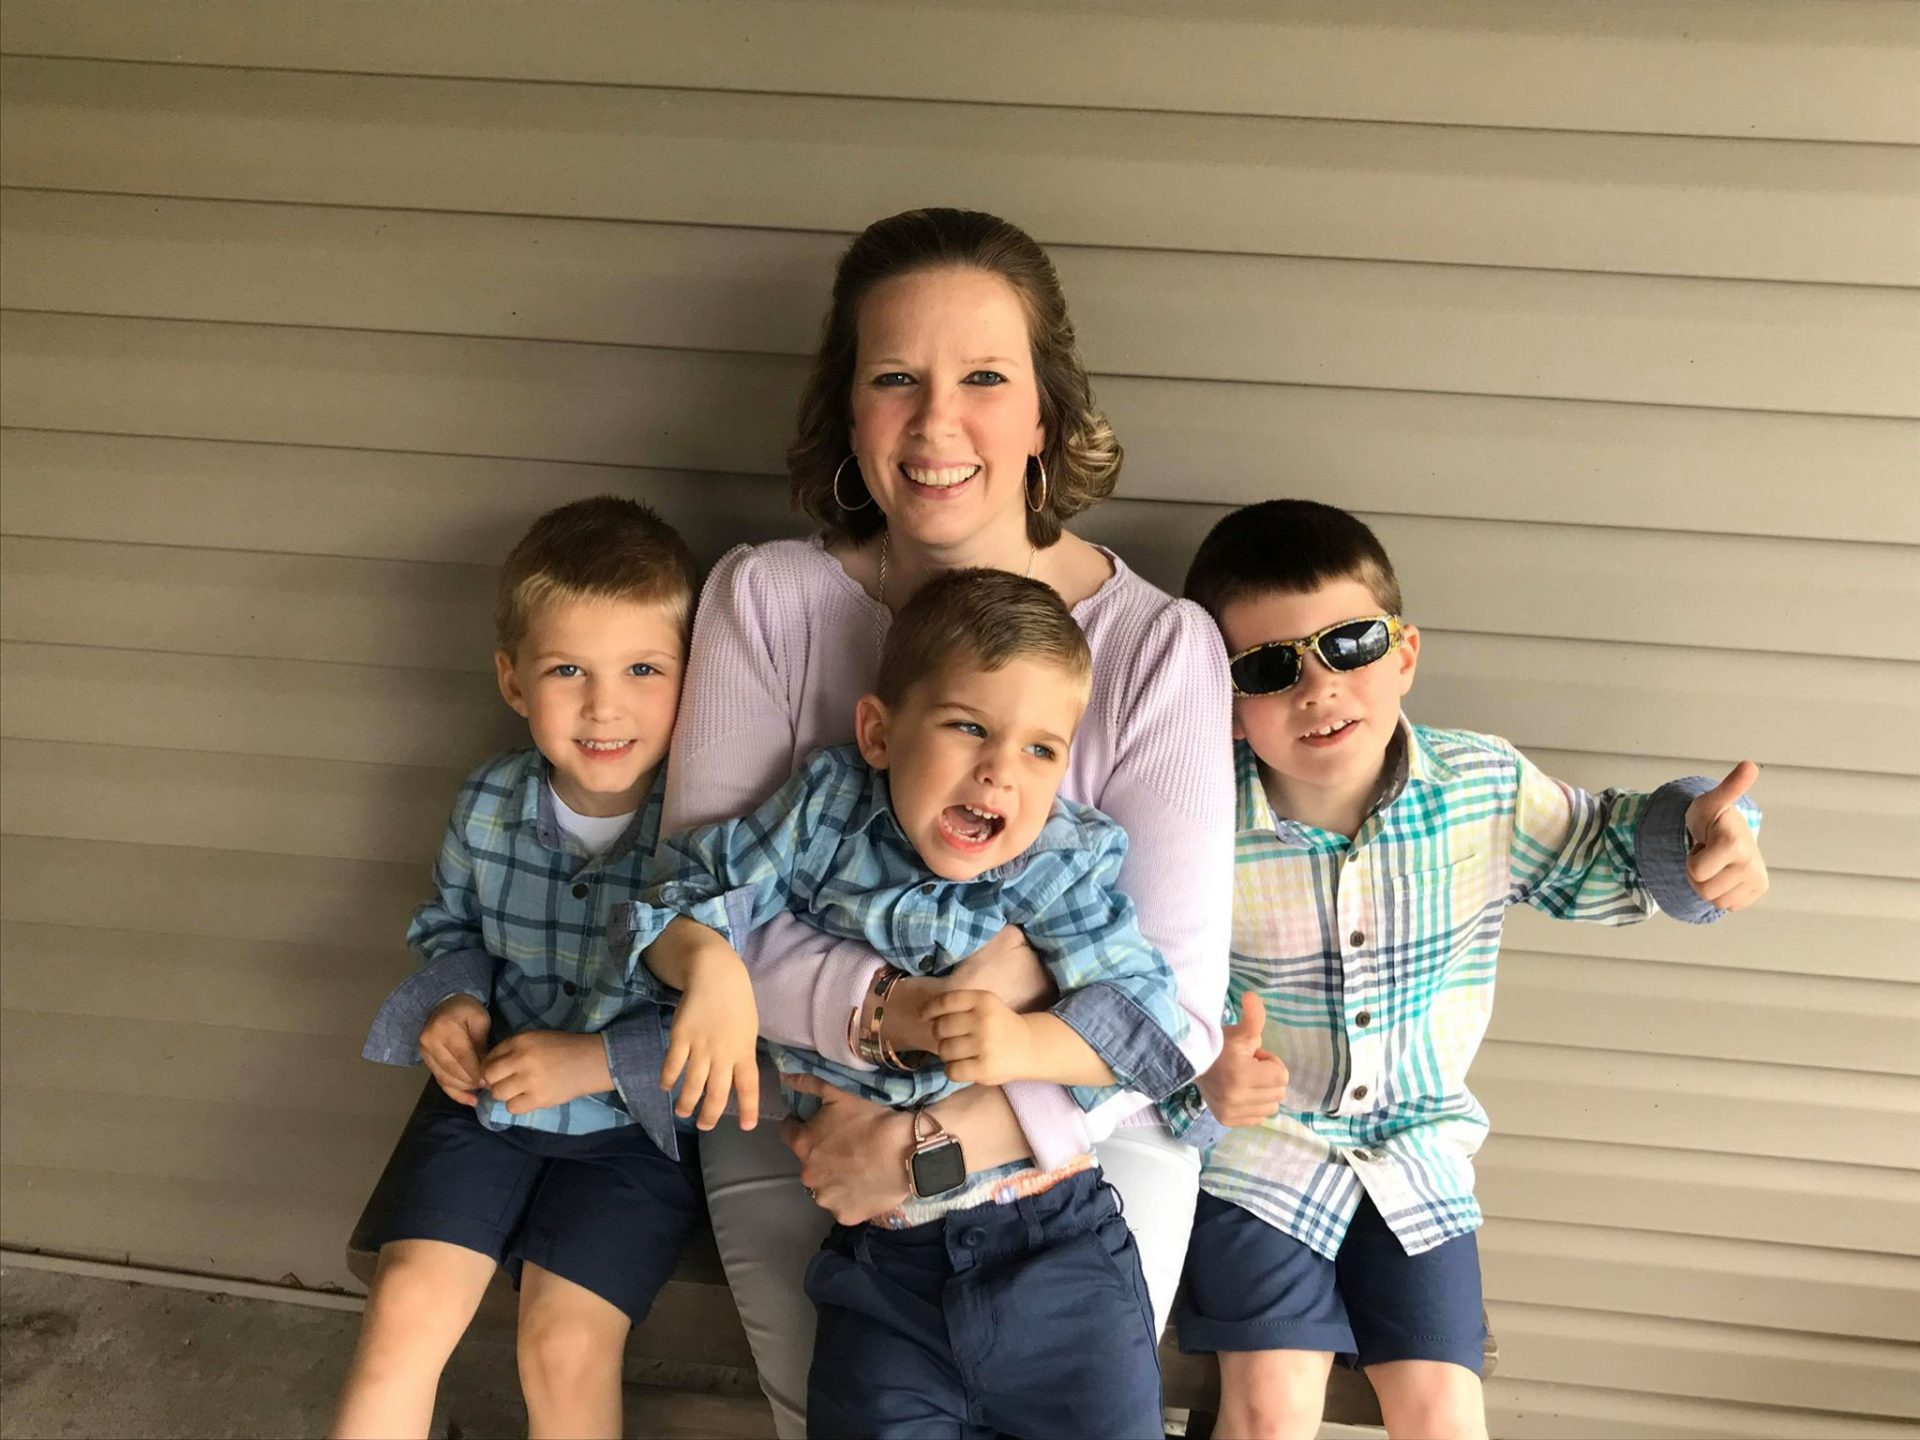 Tara Ryan-Schill with her sons (from left to right), Luke, 5, Jacob, 3, and Andrew, 8.